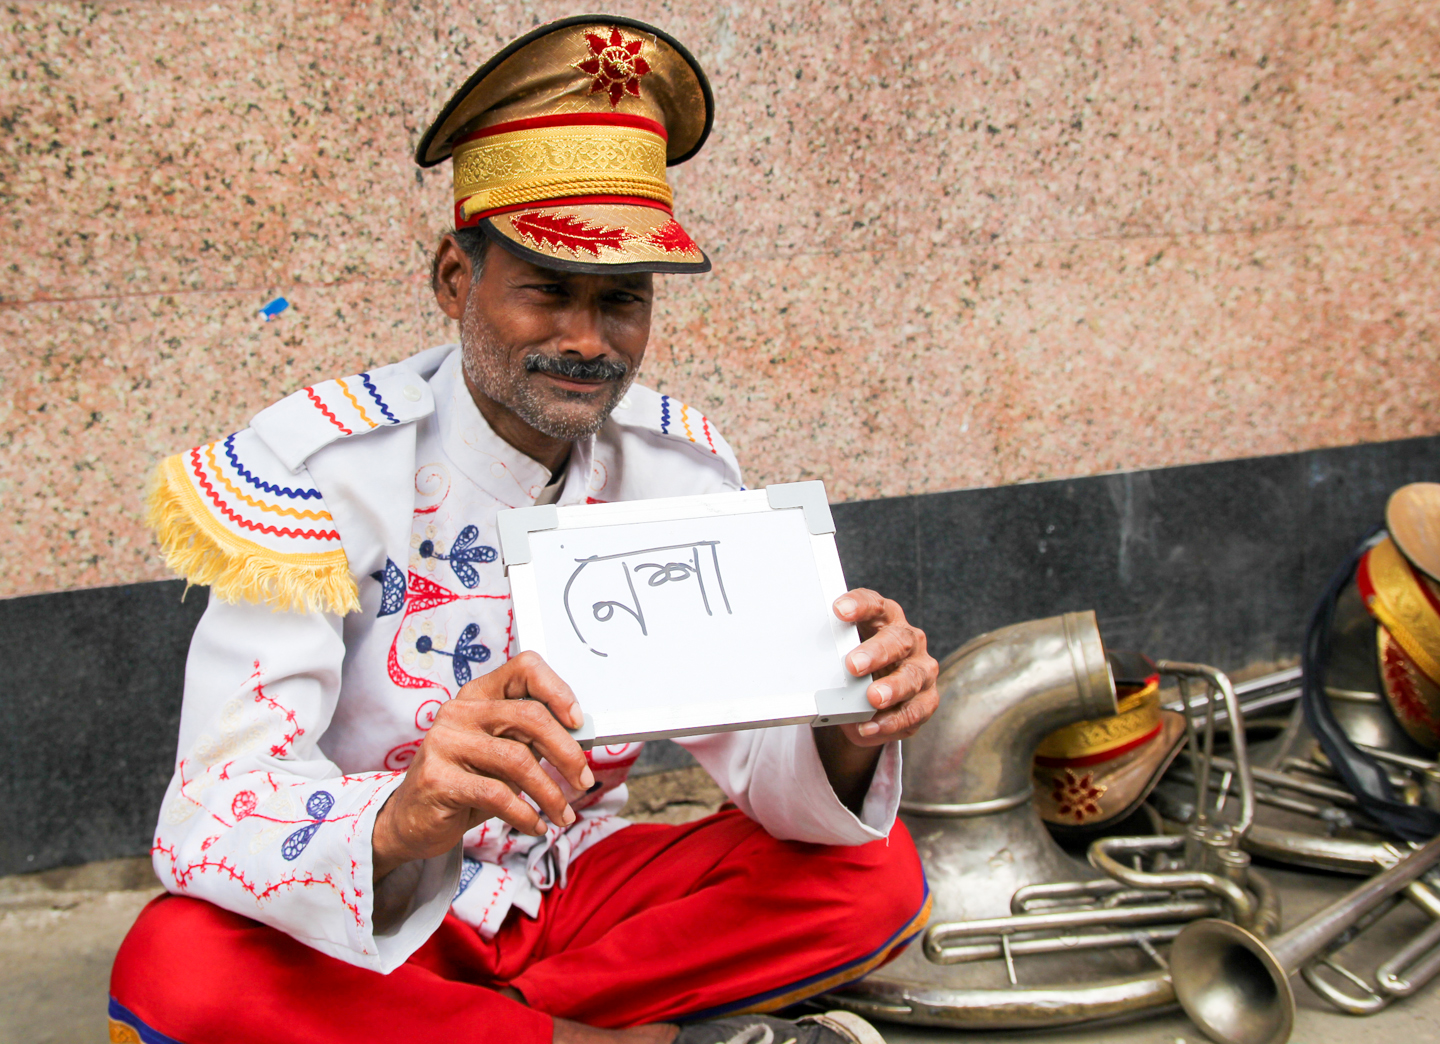 Mukthar Hussain plays the tuba in a Kolkata-based band. During Durga Puja, a six-day holiday celebrated throughout West Bengal, he and his band play until dawn.